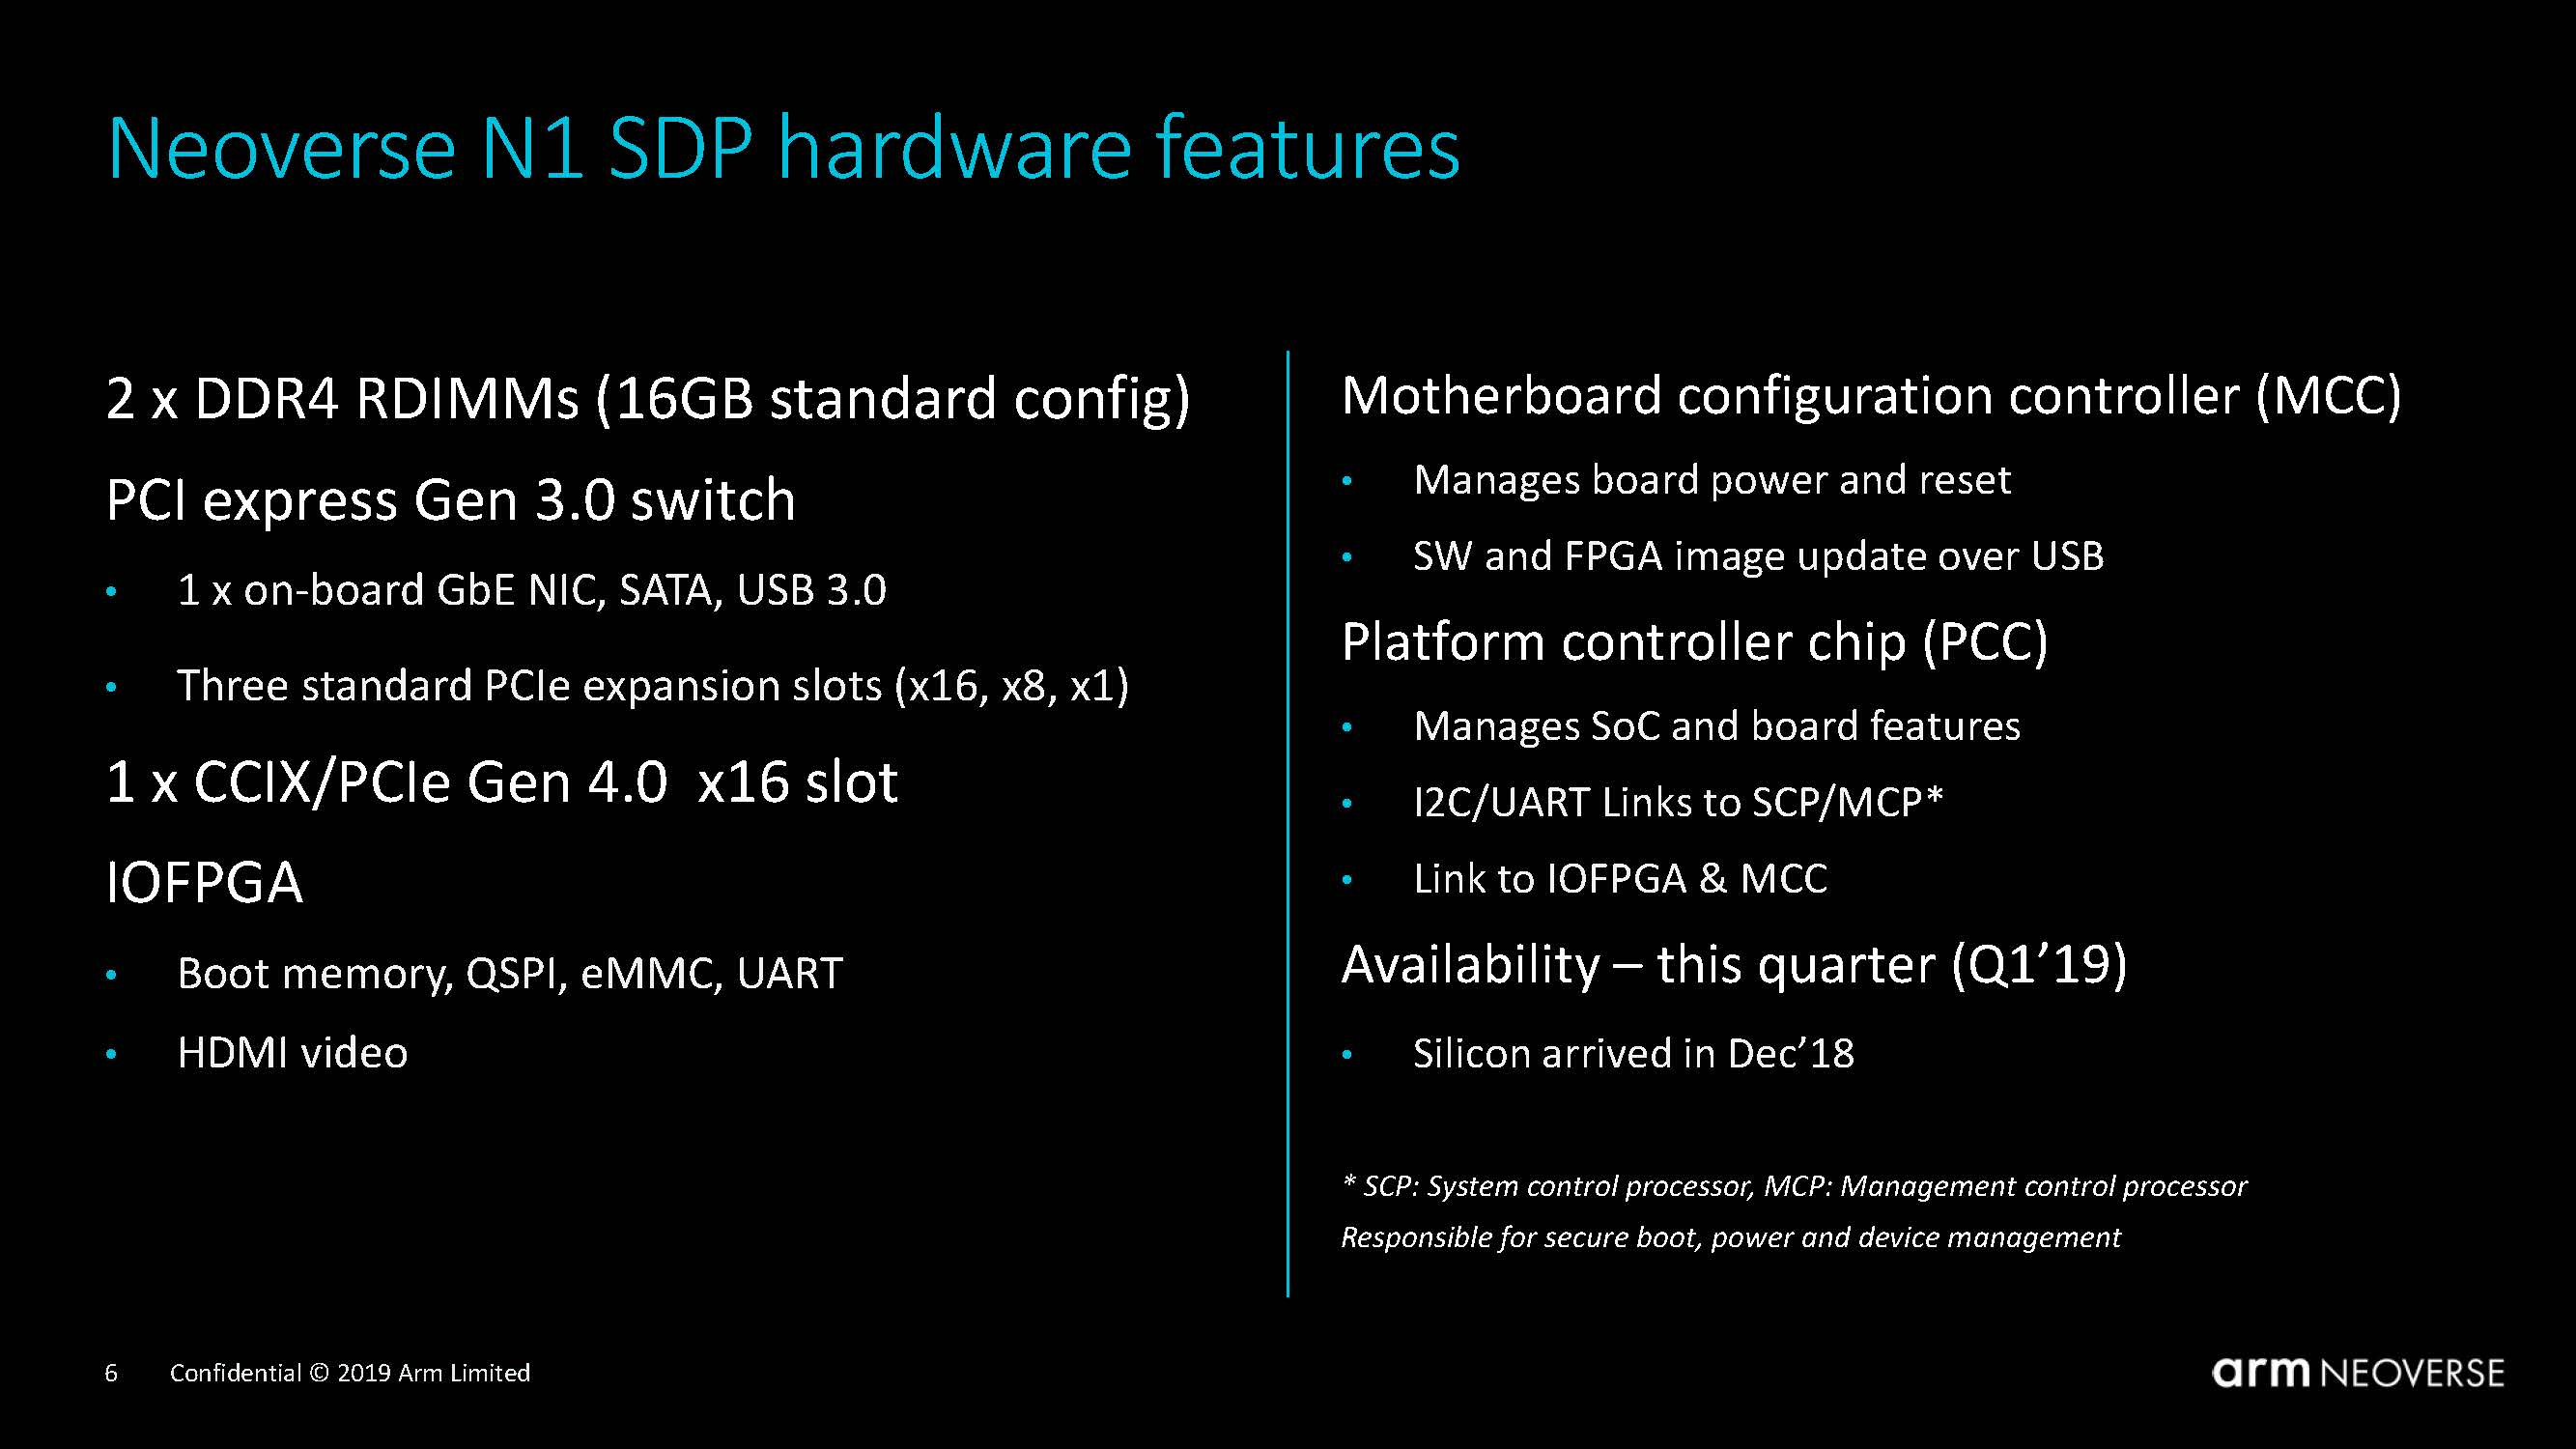 A Journey to Next-Gen Arm Neoverse N1 and E1 Cores - Page 3 of 5